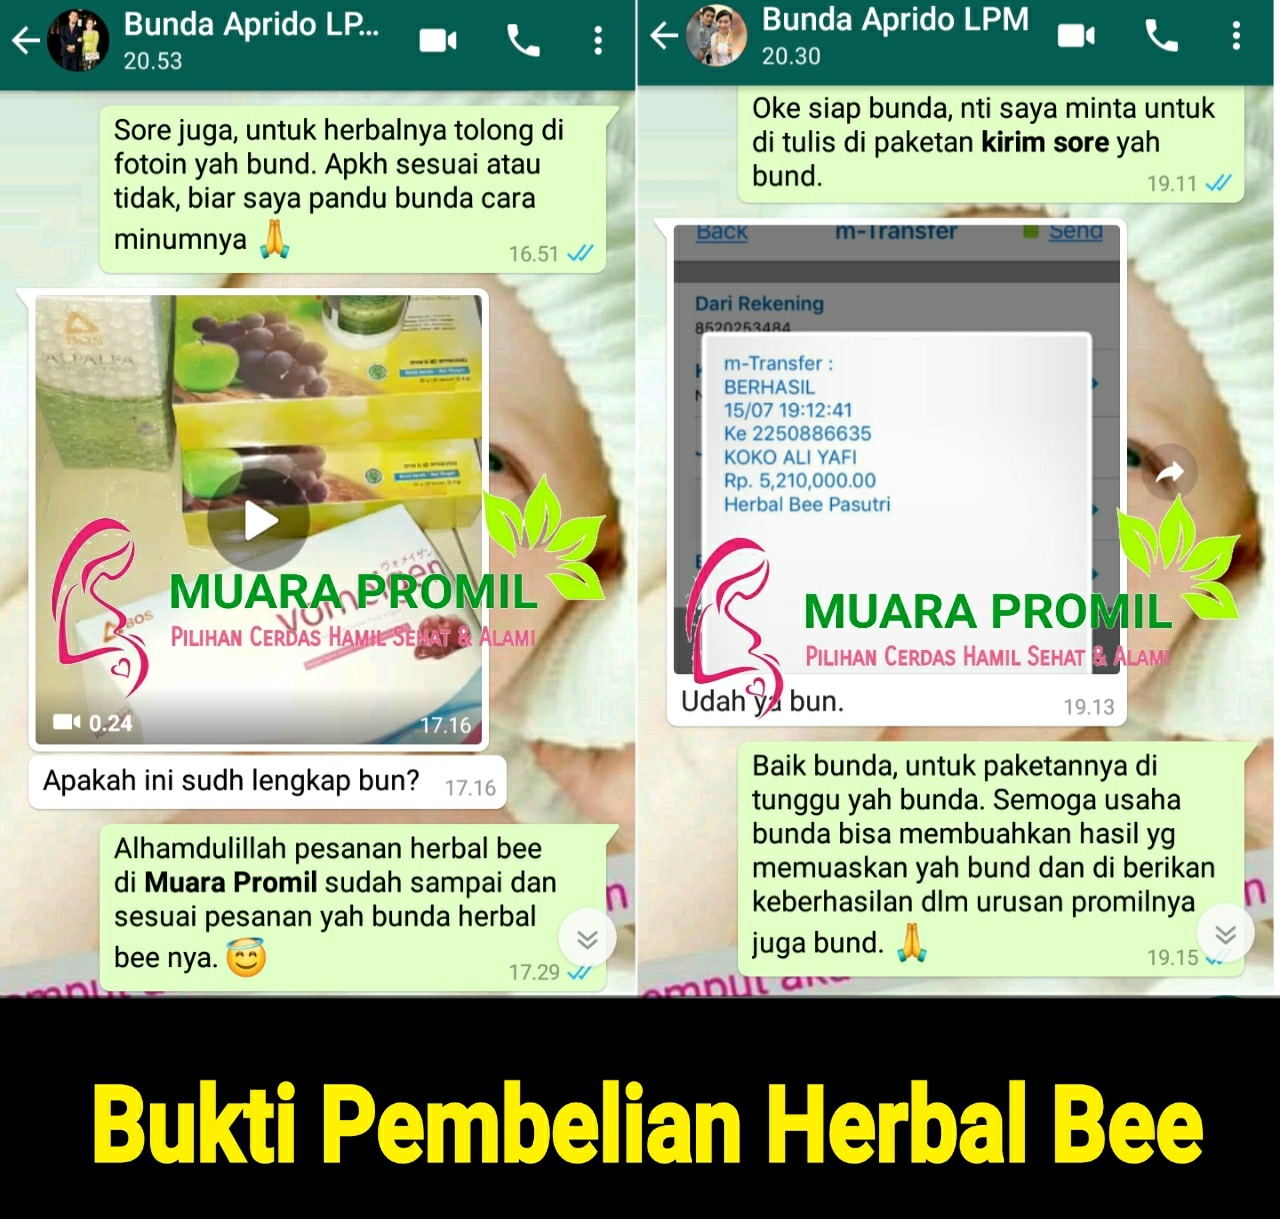 Bukti Penjualan Herbal Bee di Medan